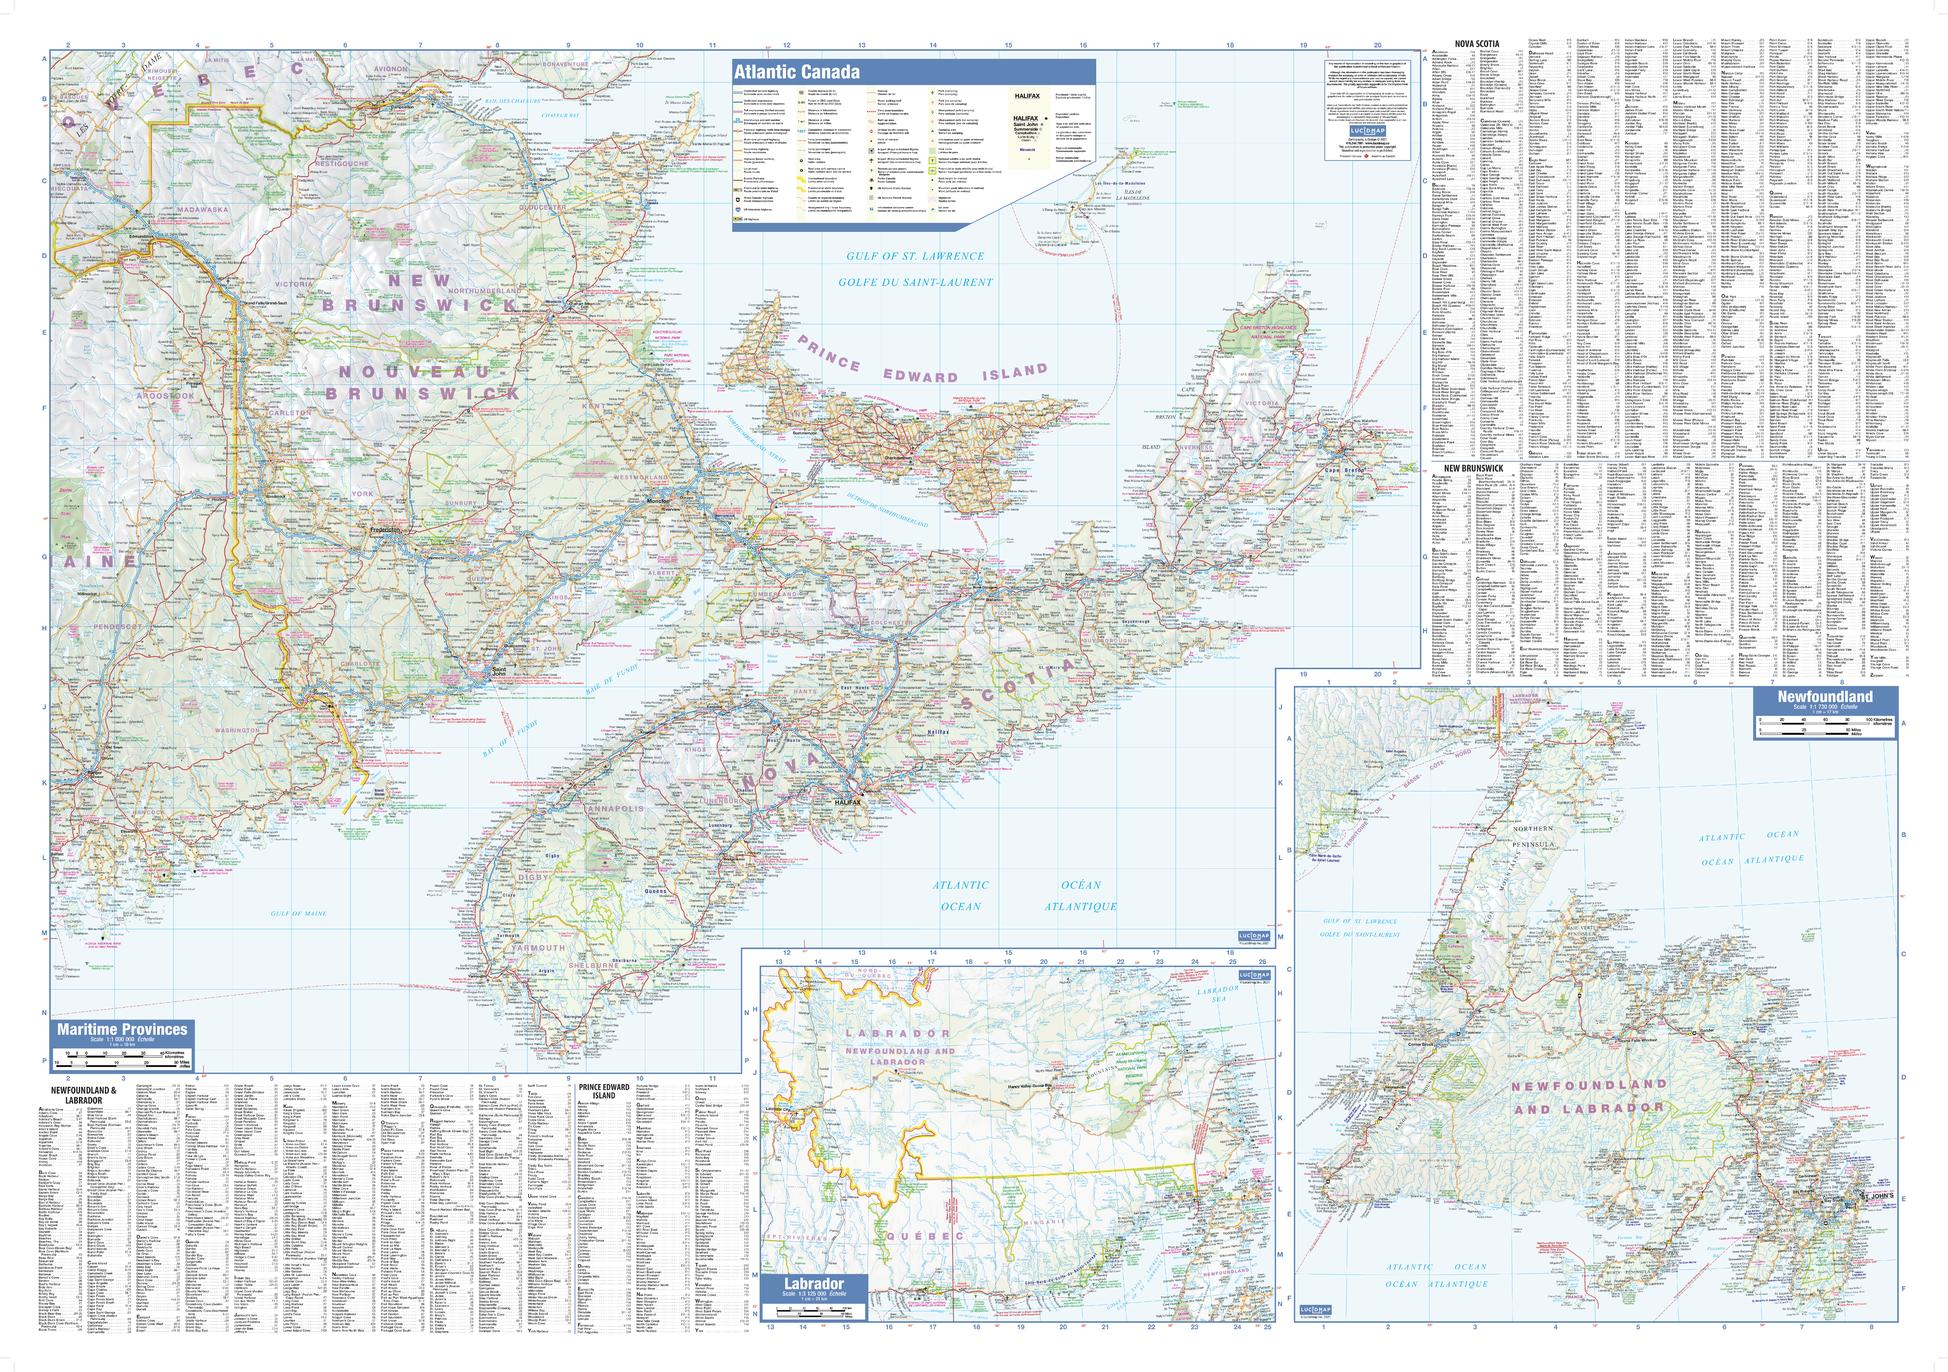 Atlantic Provinces Wall Map - small